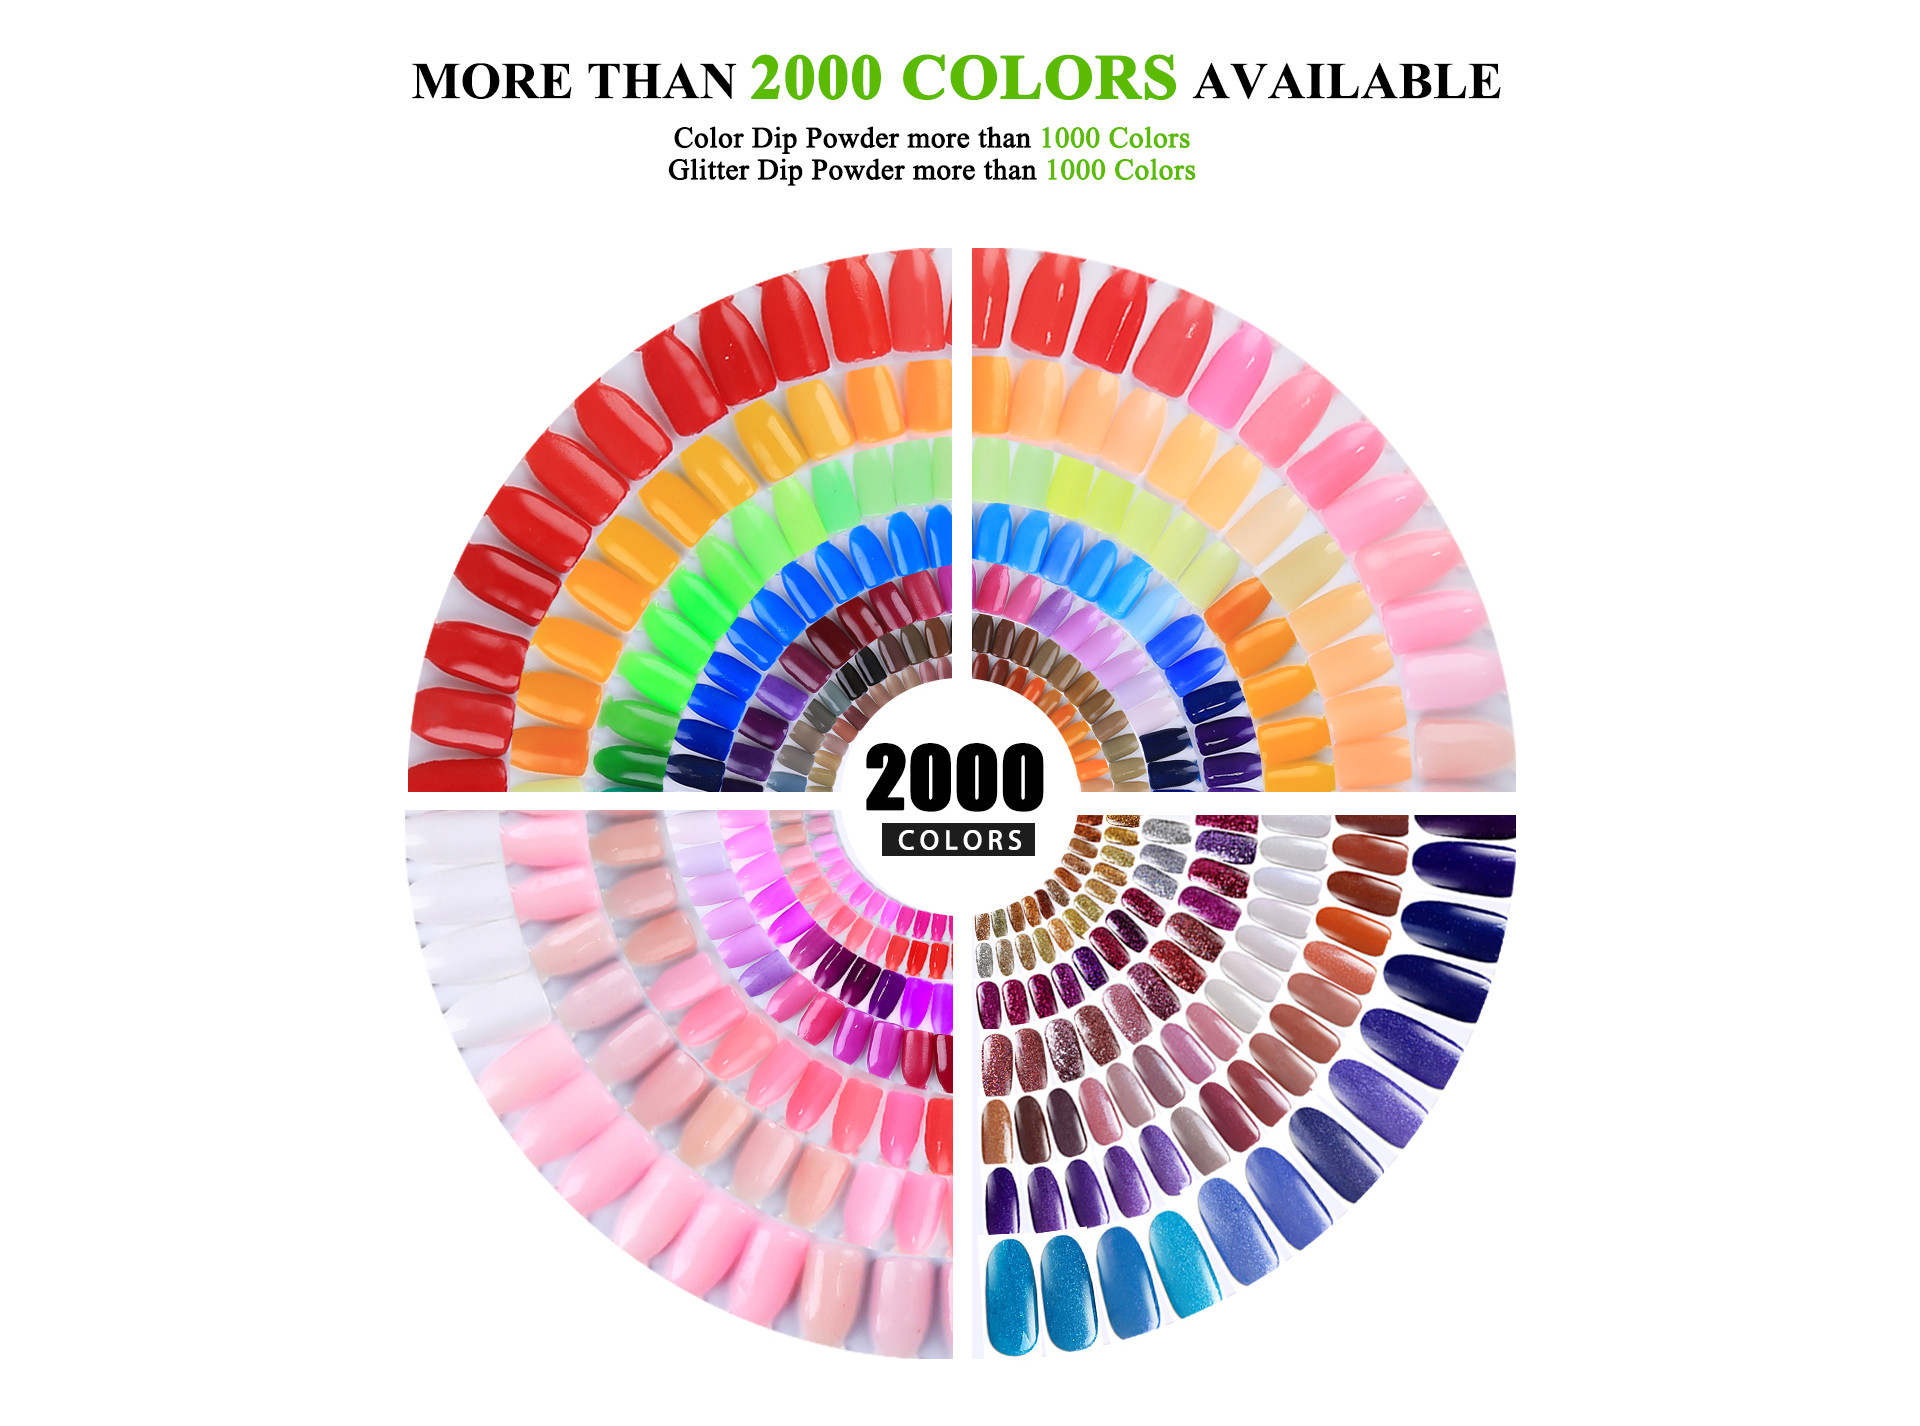 Dip Powder Colors Chart